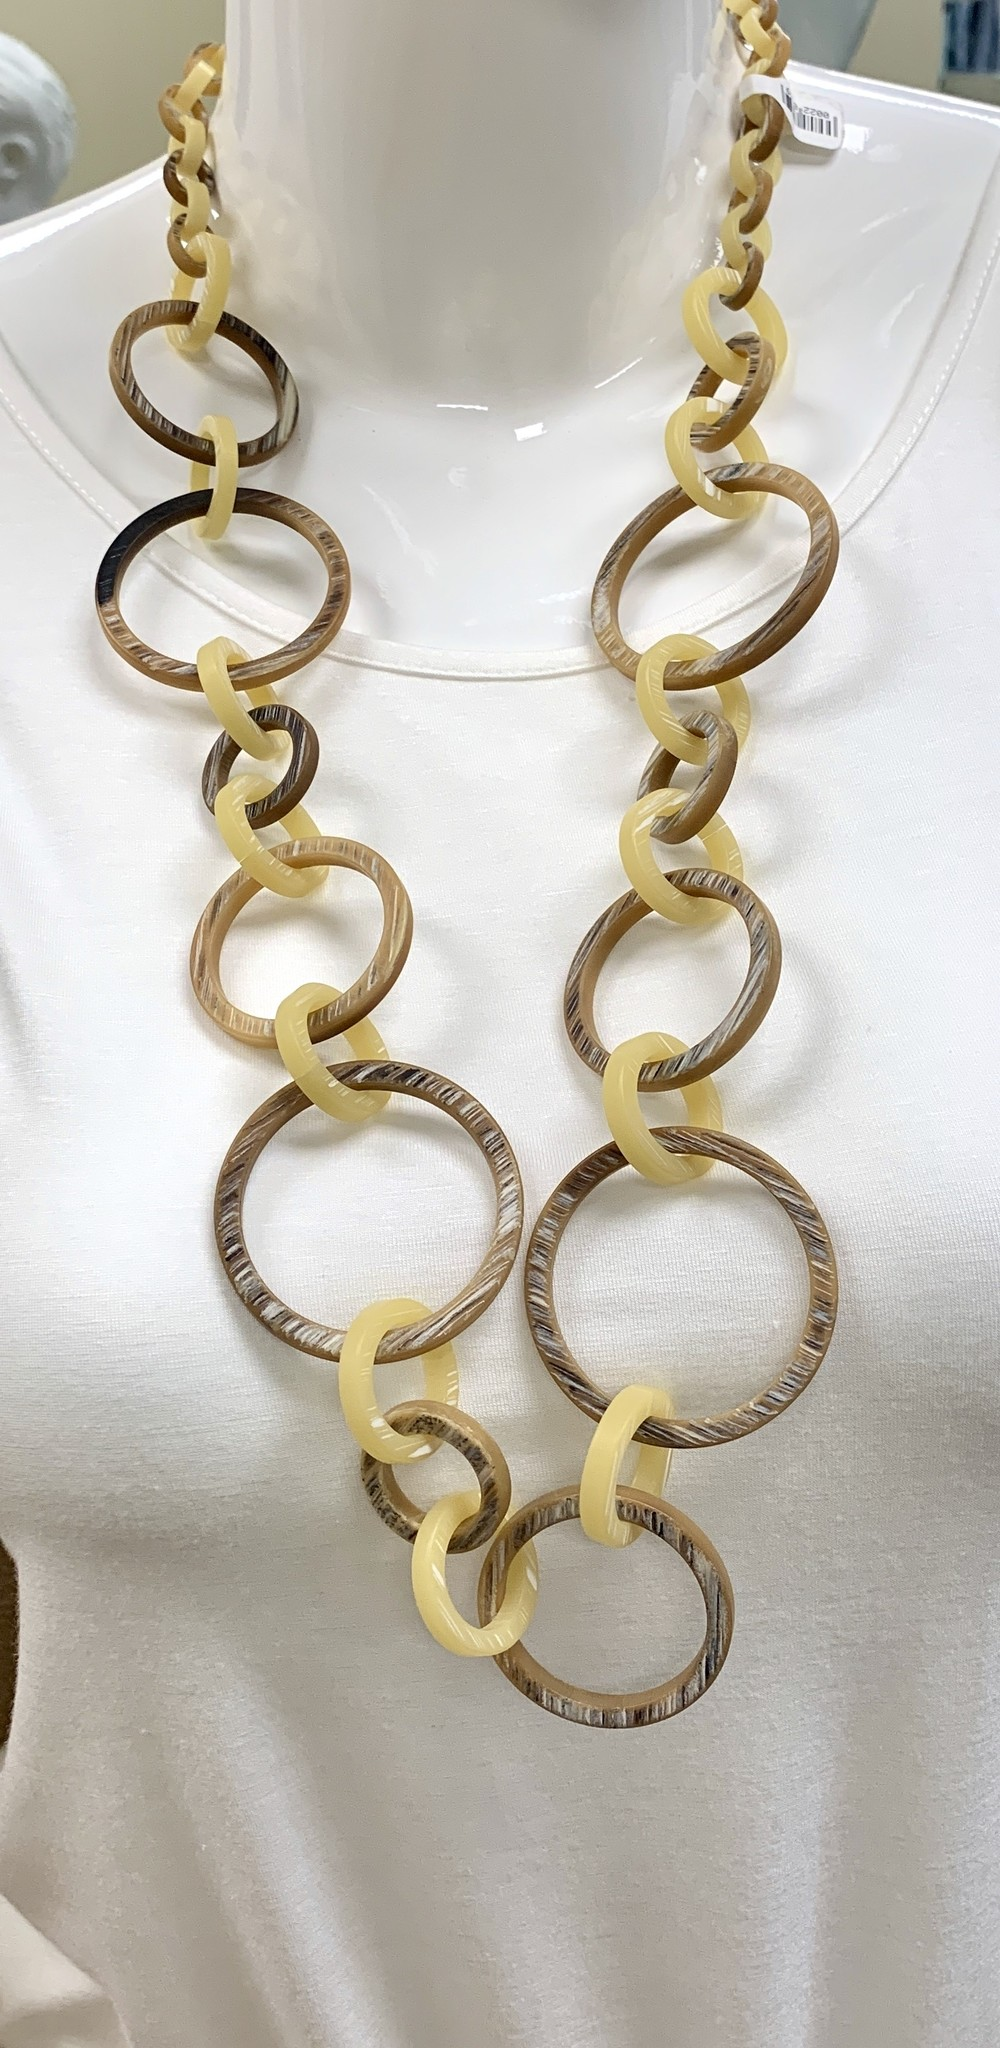 Robert A Horn Necklace